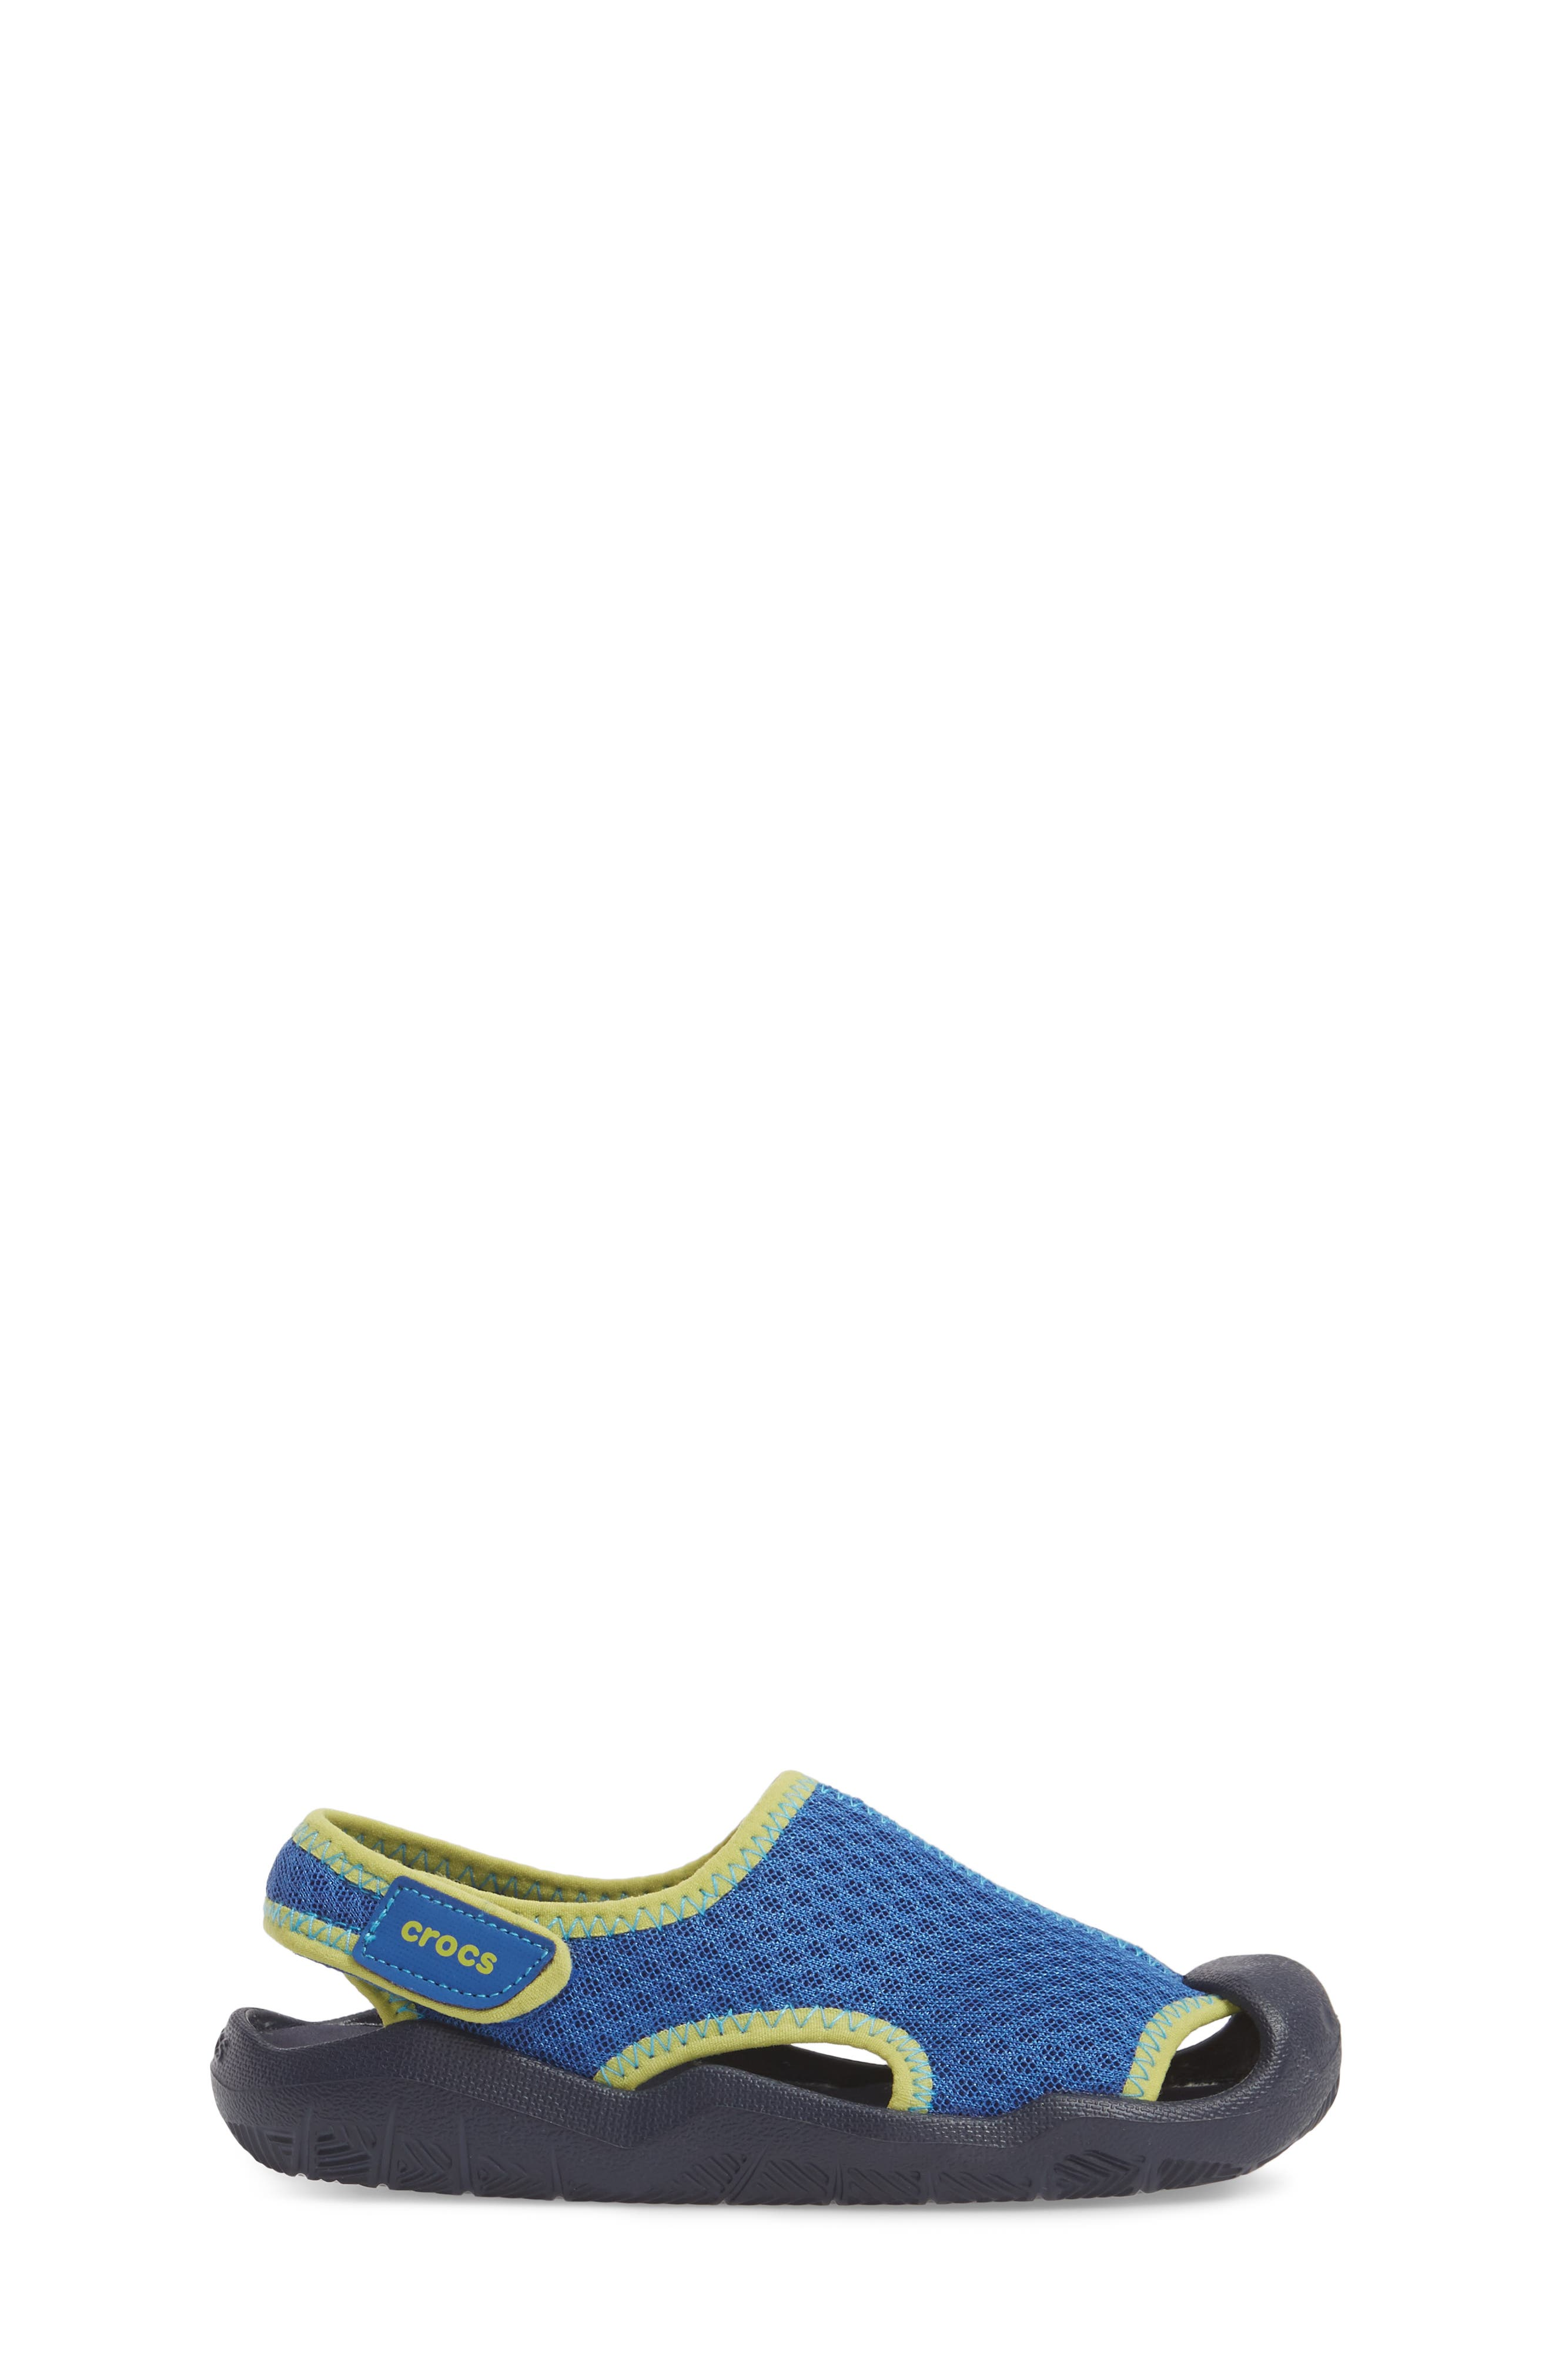 Swiftwater Sandal,                             Alternate thumbnail 15, color,